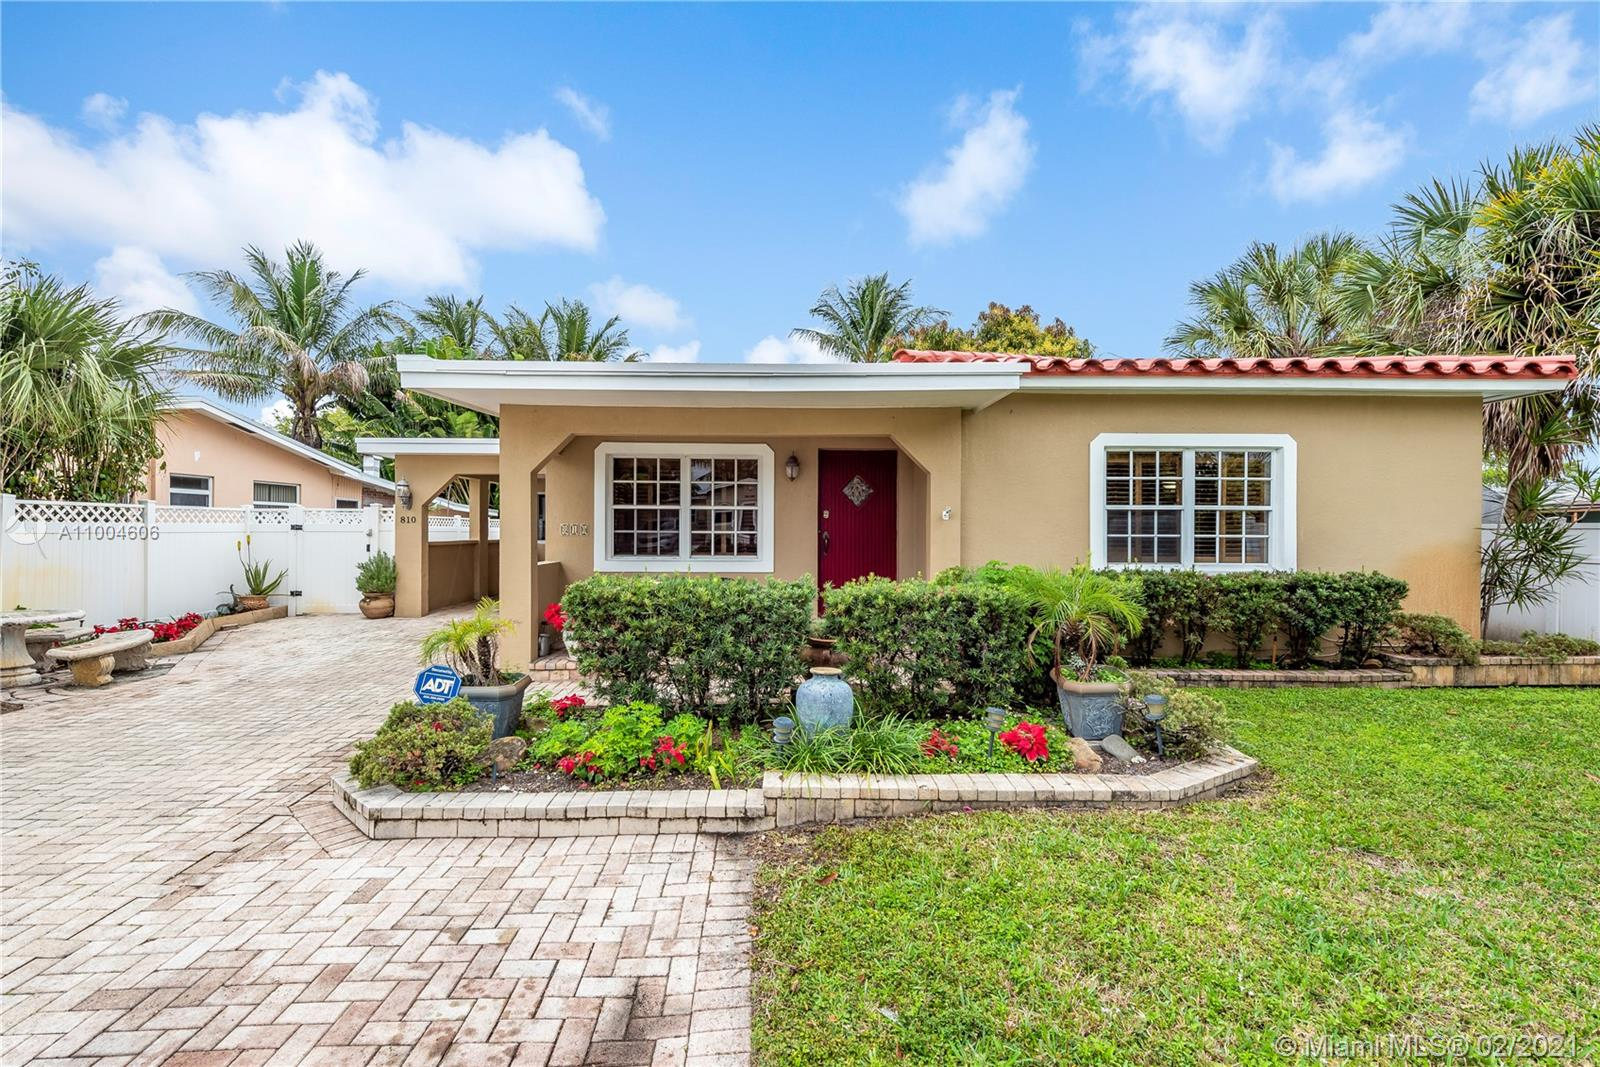 Your little piece of paradise awaits in the lovely Maleleuca Gardens! Huge lot with space for a pool and best of all, no neighbors behind you with a 50ft easement! This gem features 4 bedrooms, 2 baths, and 2 kitchens. Covered patio with built in BBQ great for grilling & entertaining. One bedroom and bath can be used as a mother in law suite with its own kitchen. Enclosed Florida room has sliding windows and skylights that gives it a bright and airy feel with doggy doors for your pets. Tons of storage space inside and out. Long pavered driveway leads into a covered carport. Main kitchen has a walk in pantry, granite countertops, and high quality appliances. Brand new AC and LED lighting throughout. Backyard gardening beds and mango trees. Neighborhood boat ramp just a block away!